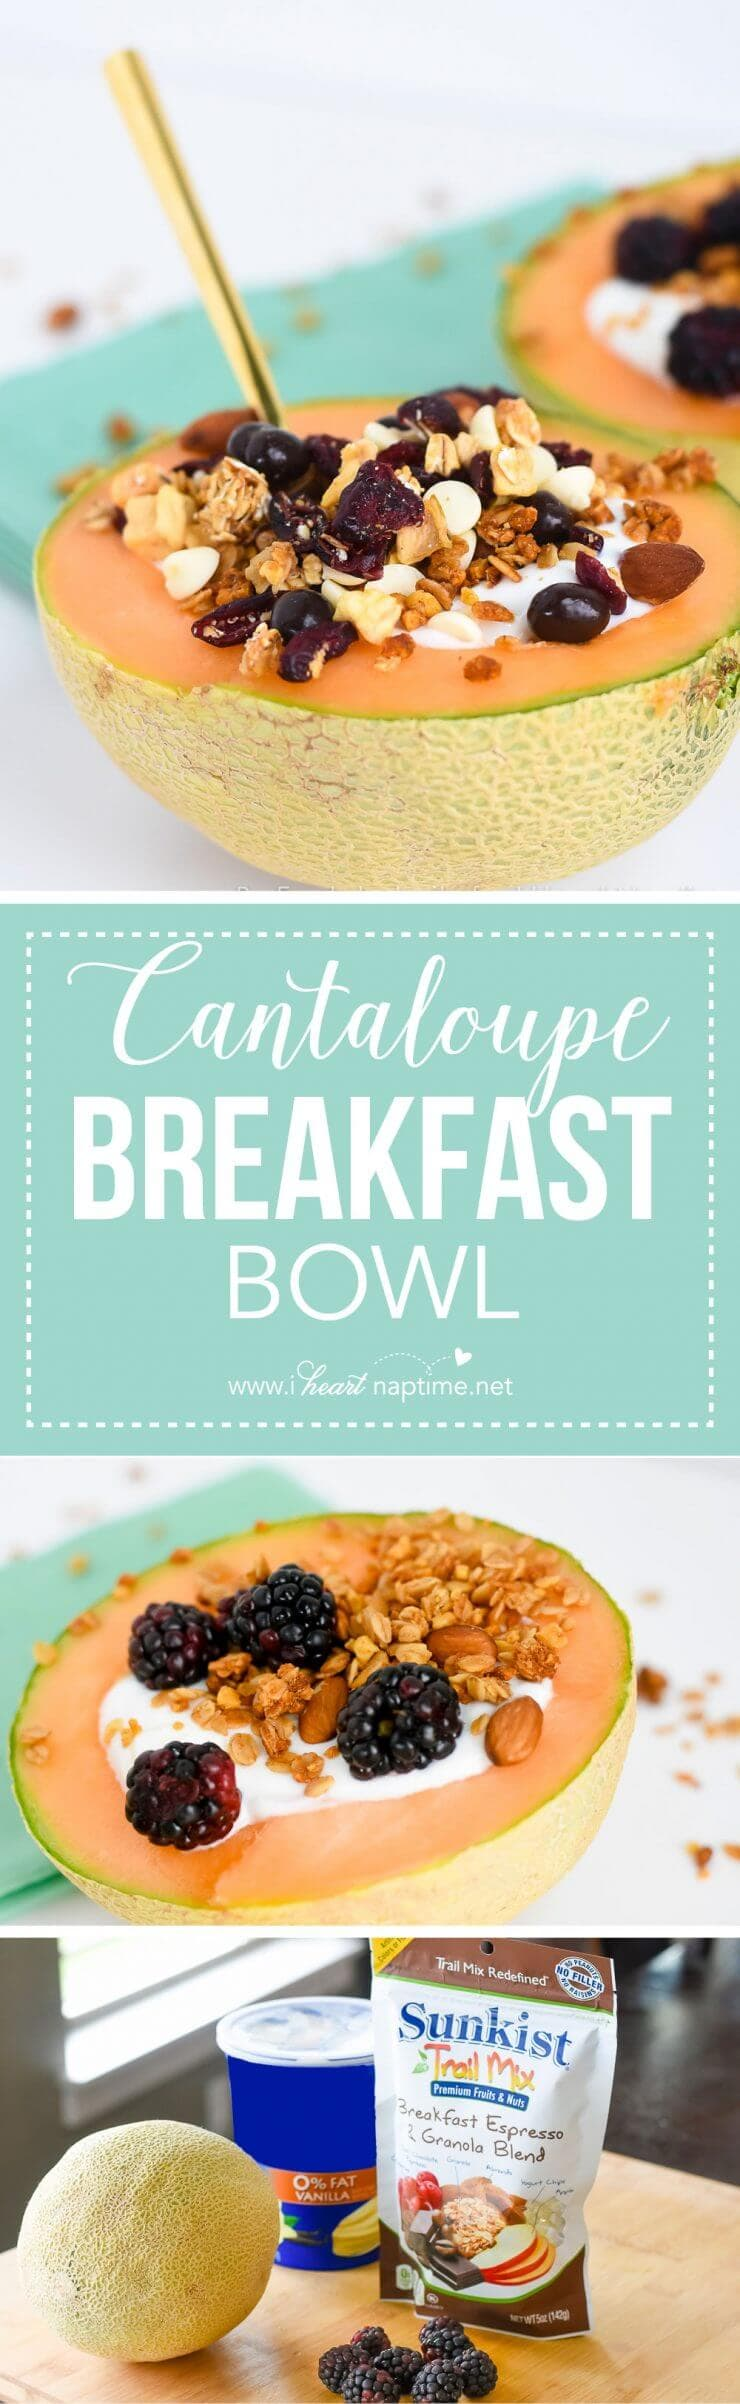 Cantaloupe Breakfast Bowl... an all-in-one, easy way to prepare a healthy and amazingly delicious breakfast! Definitely a new favorite!